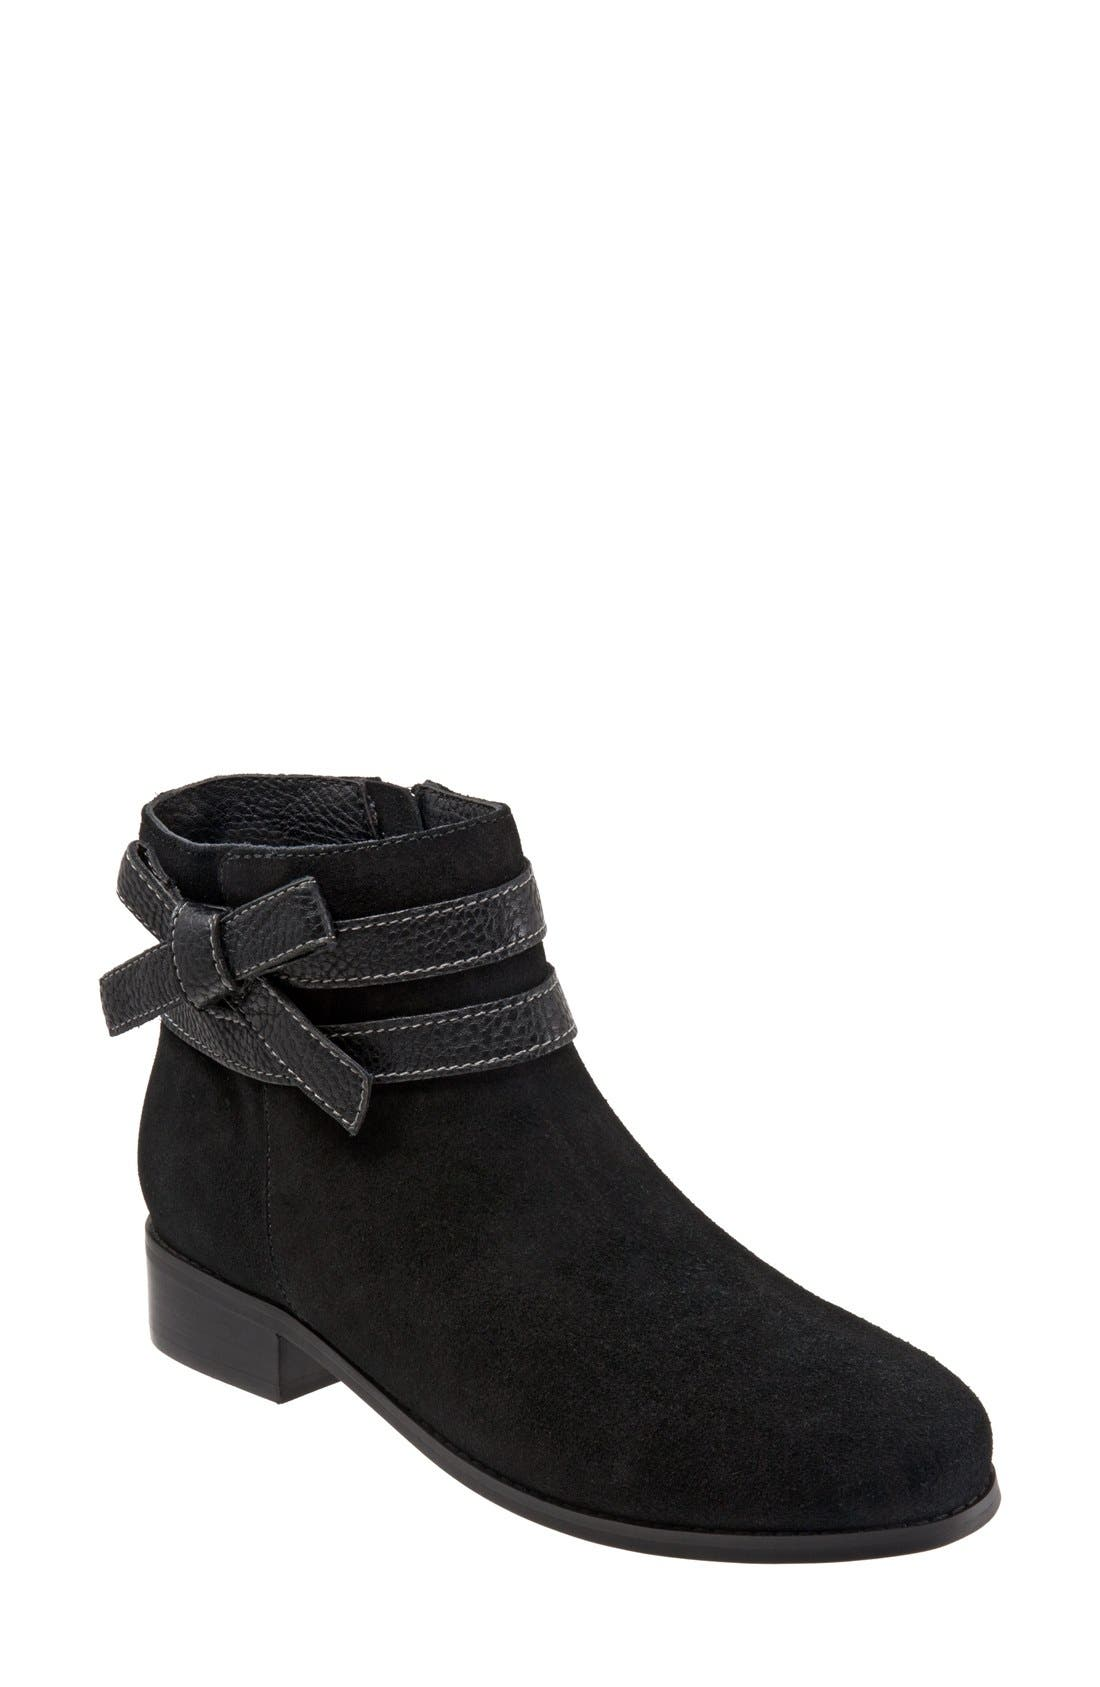 Alternate Image 1 Selected - Trotters 'Luxury' Bootie (Women)